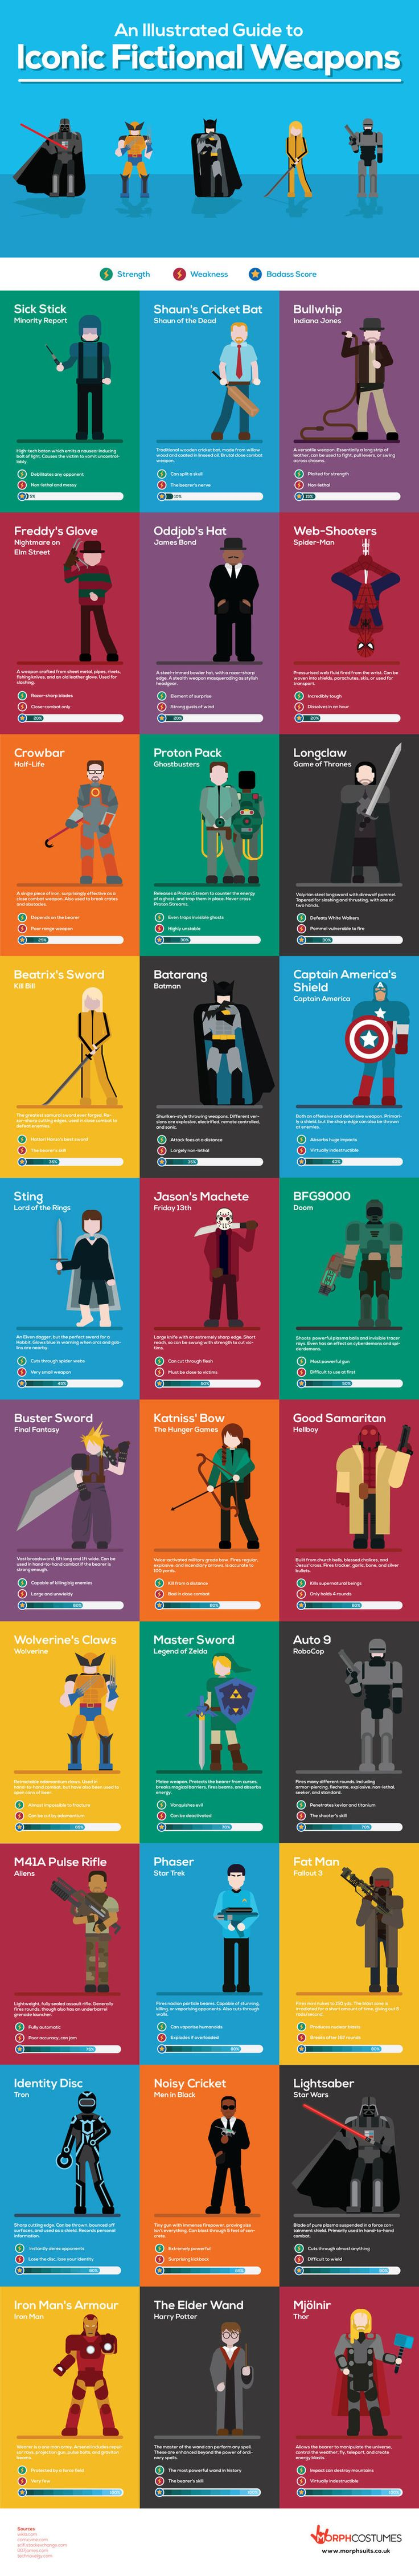 illustrated-guide-ranks-the-most-badass-fictional-weapons